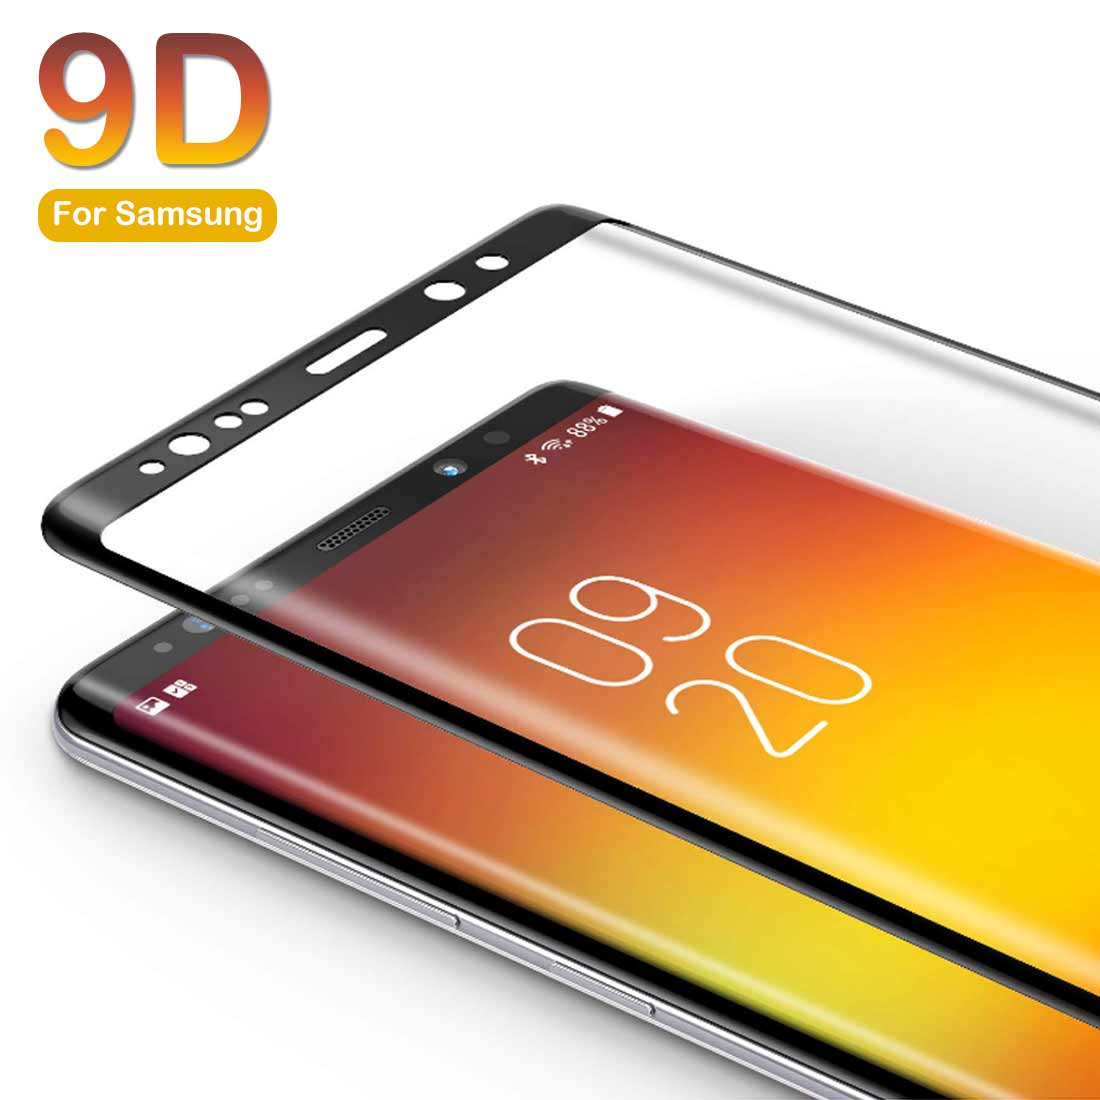 9D Full Cover Tempered Glass anti-scratch For Samsung Galaxy J3 A90 A80 A8plus <font><b>A82018</b></font> Perfect Screen Protective Glass image